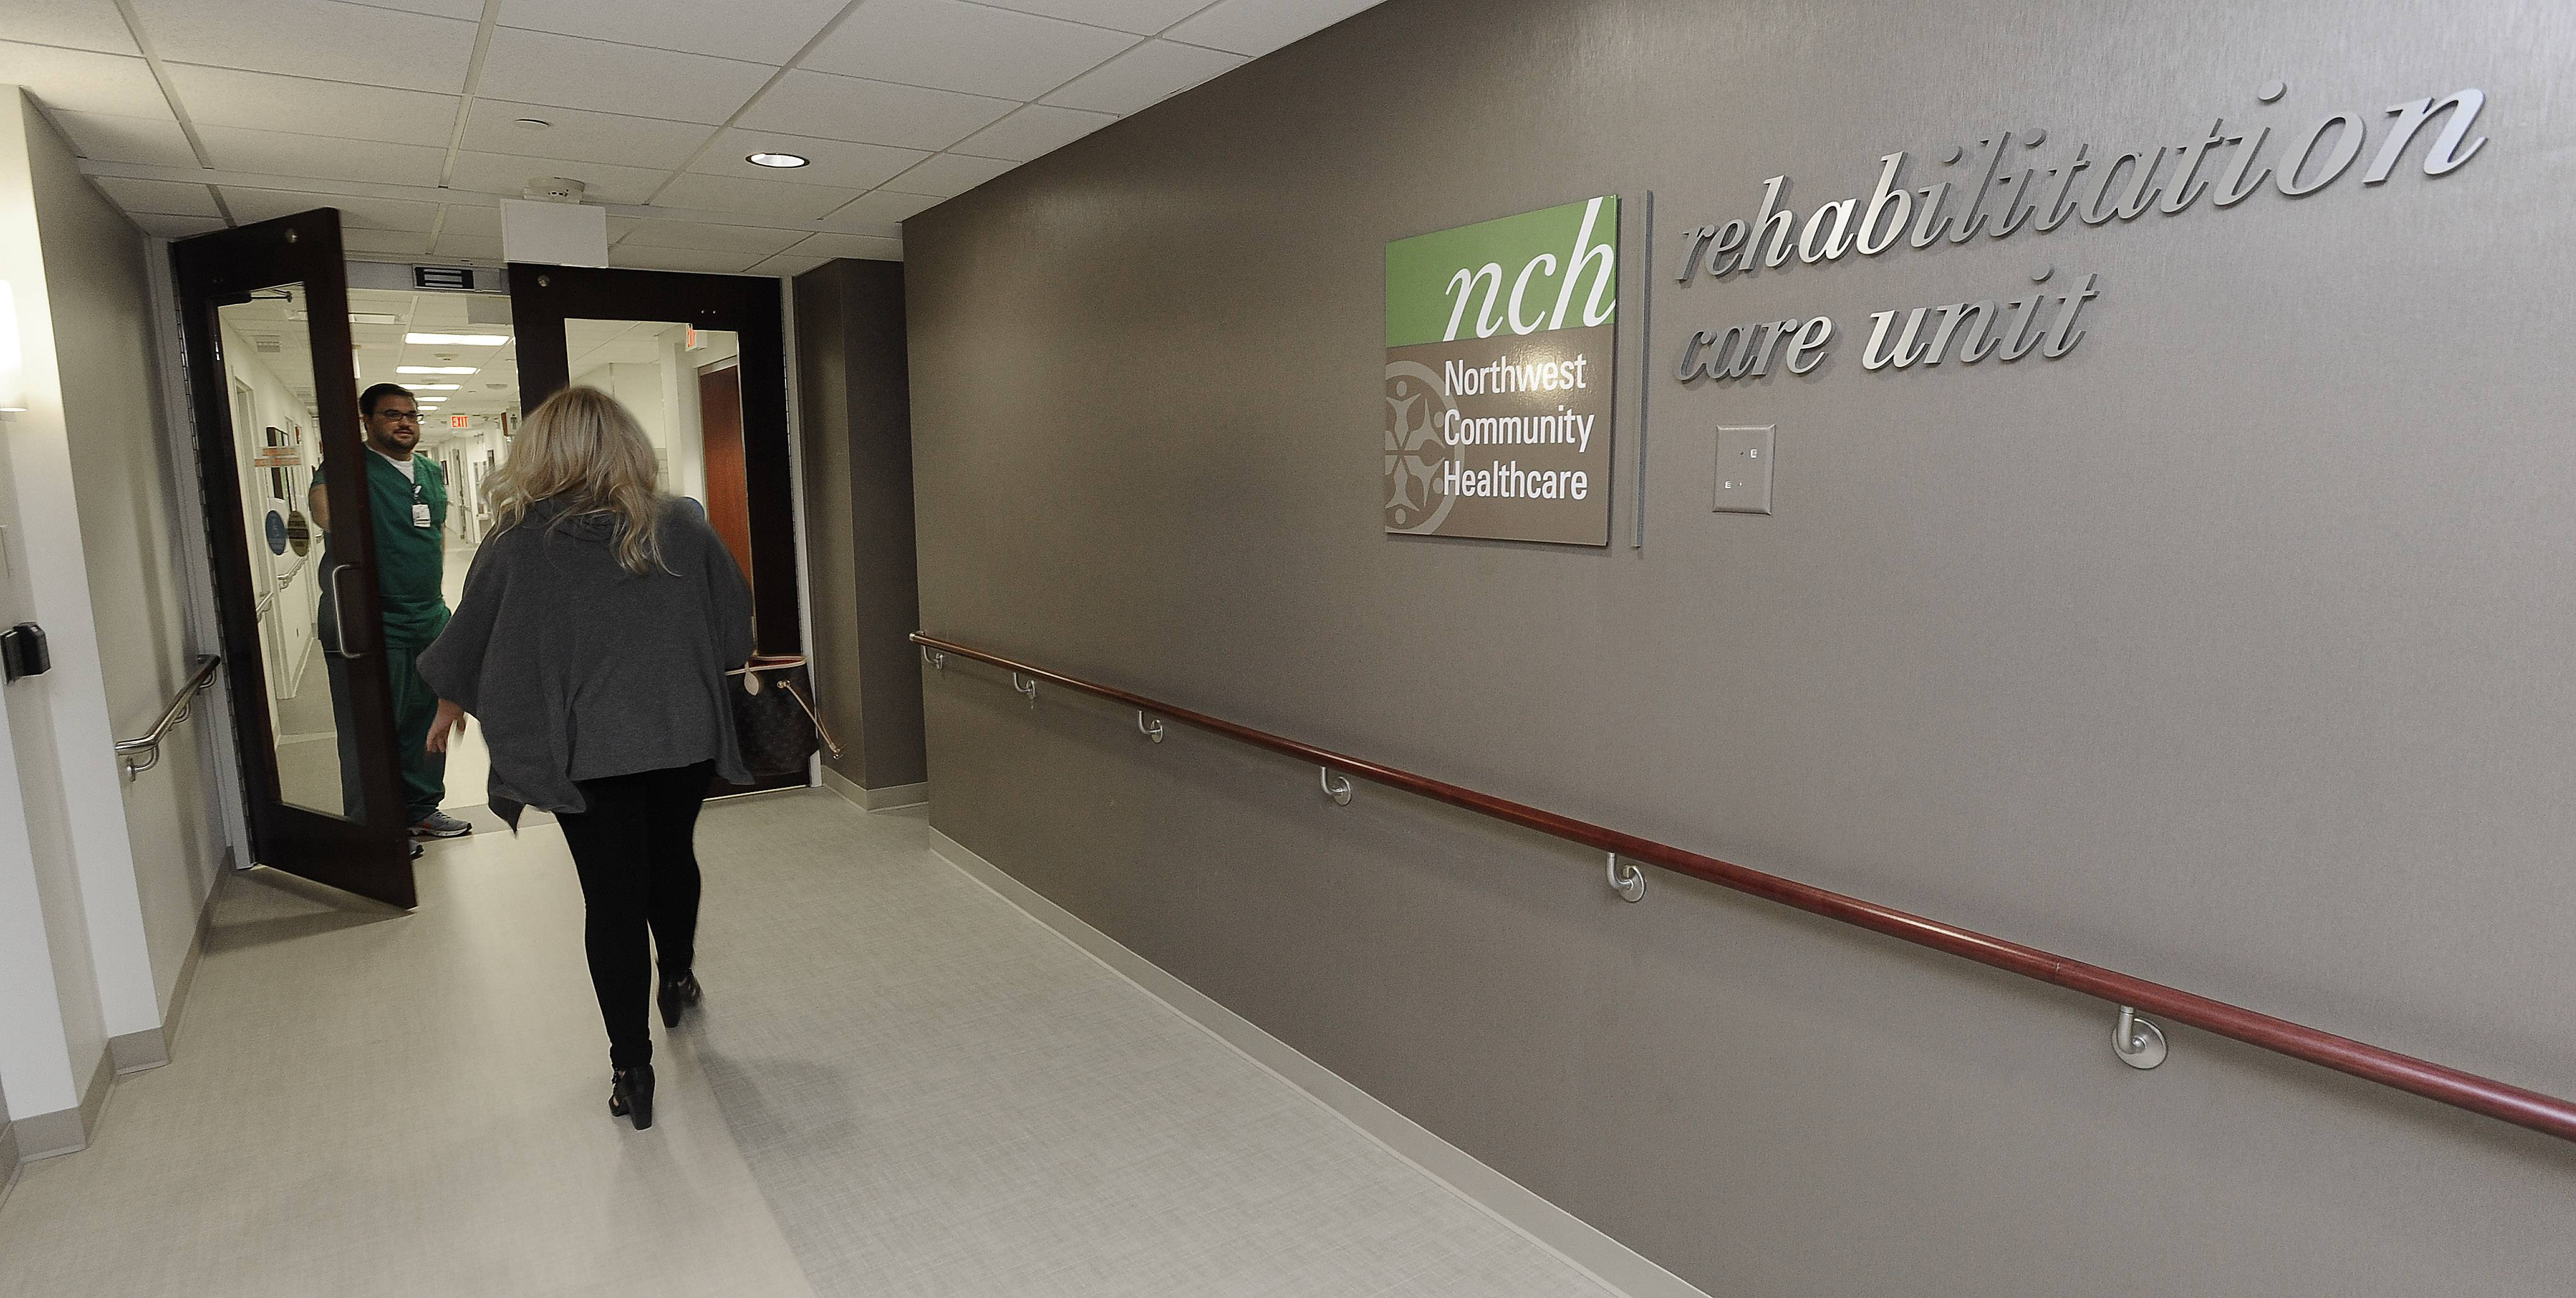 Northwest Community Hospital in Arlington Heights has opened a 17-bed inpatient rehabilitation unit.